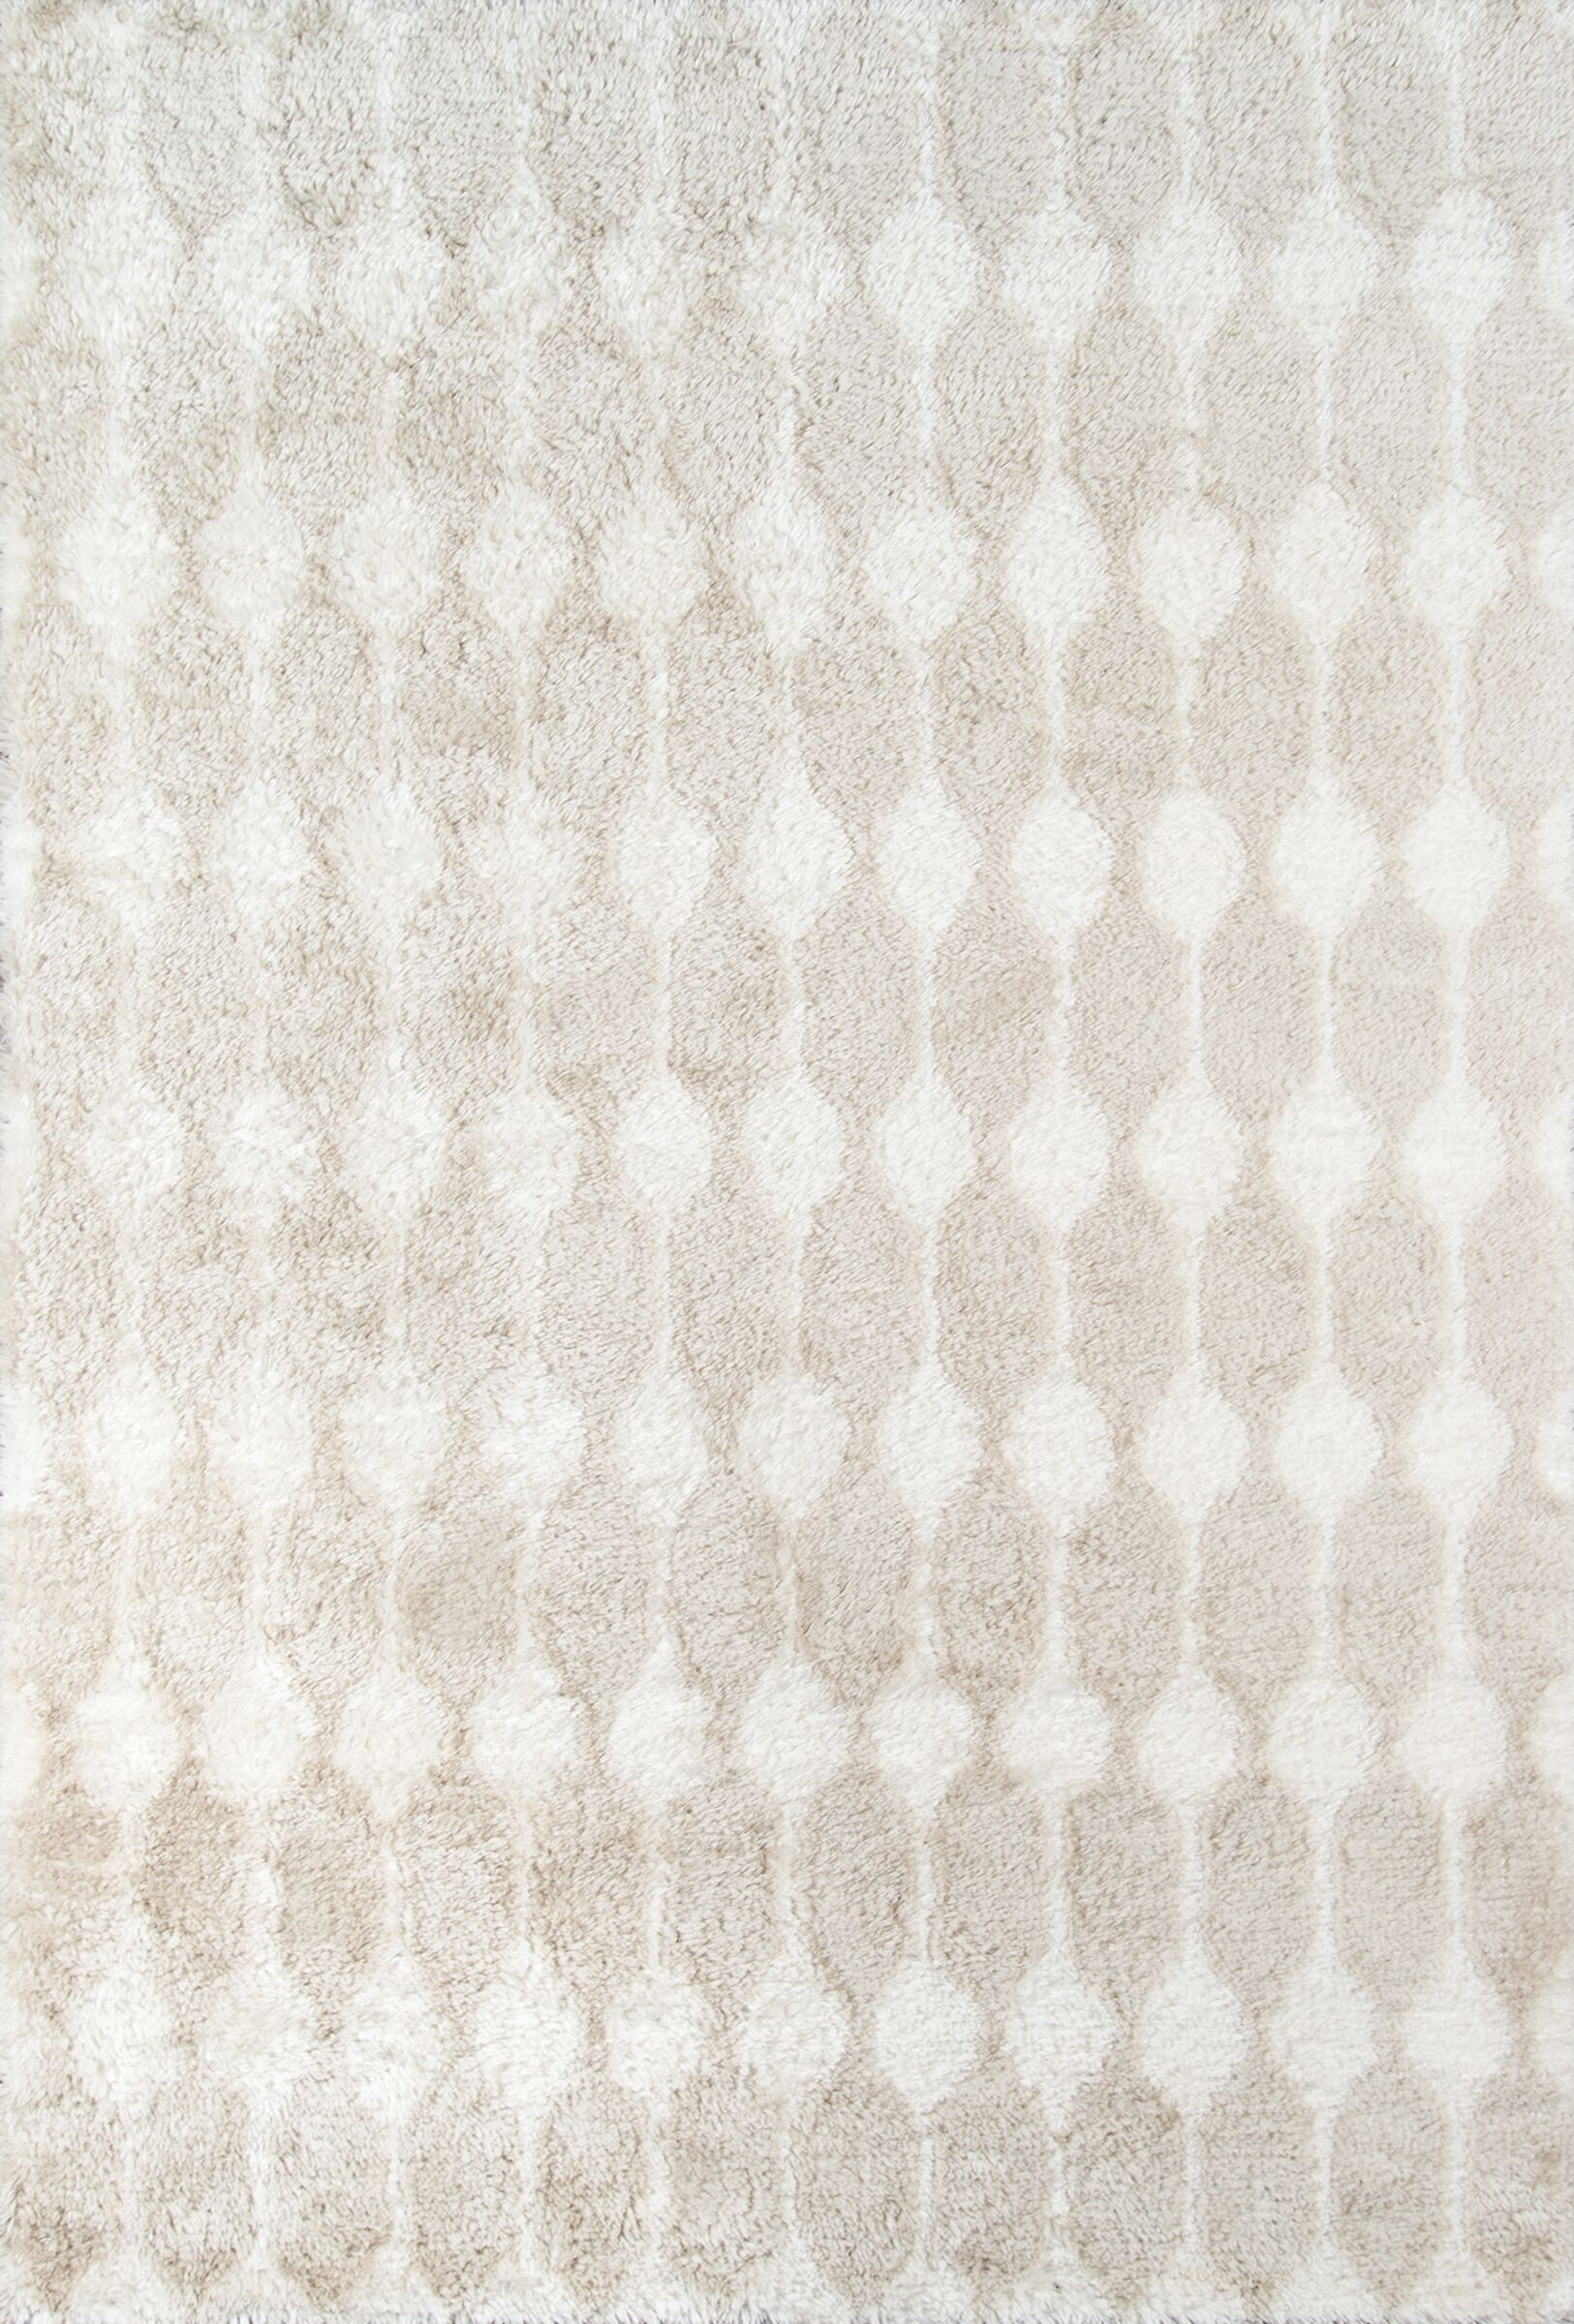 Retro Hand-Tufted Taupe Area Rug Rug Size: Rectangle 7'6